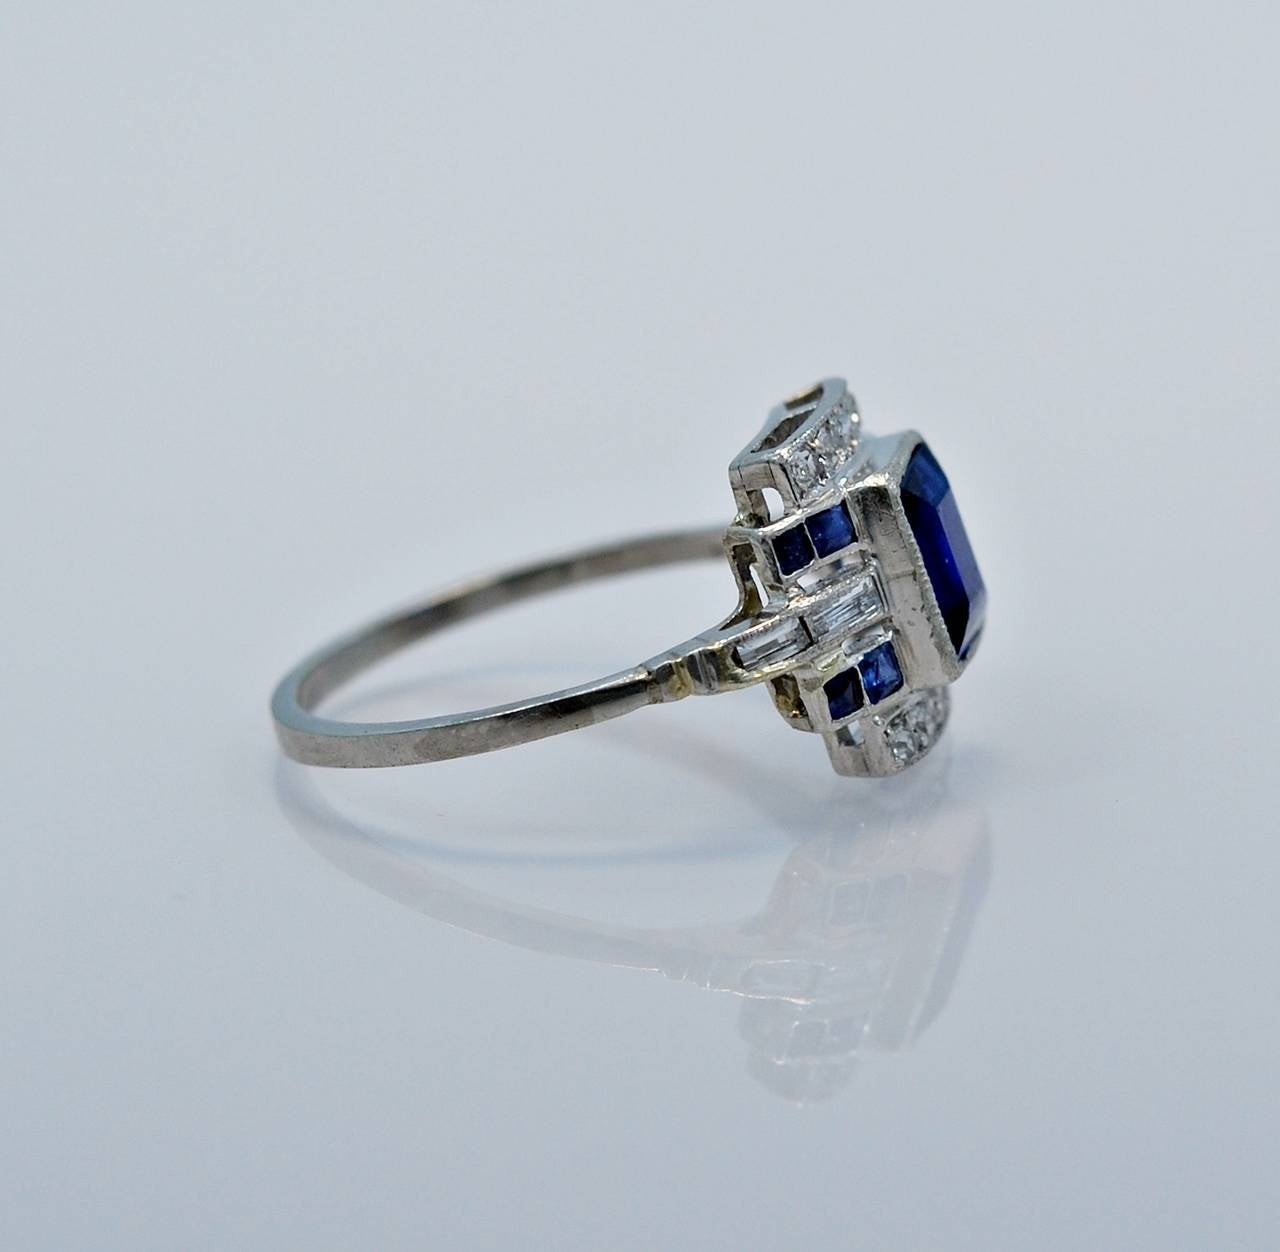 J35120 